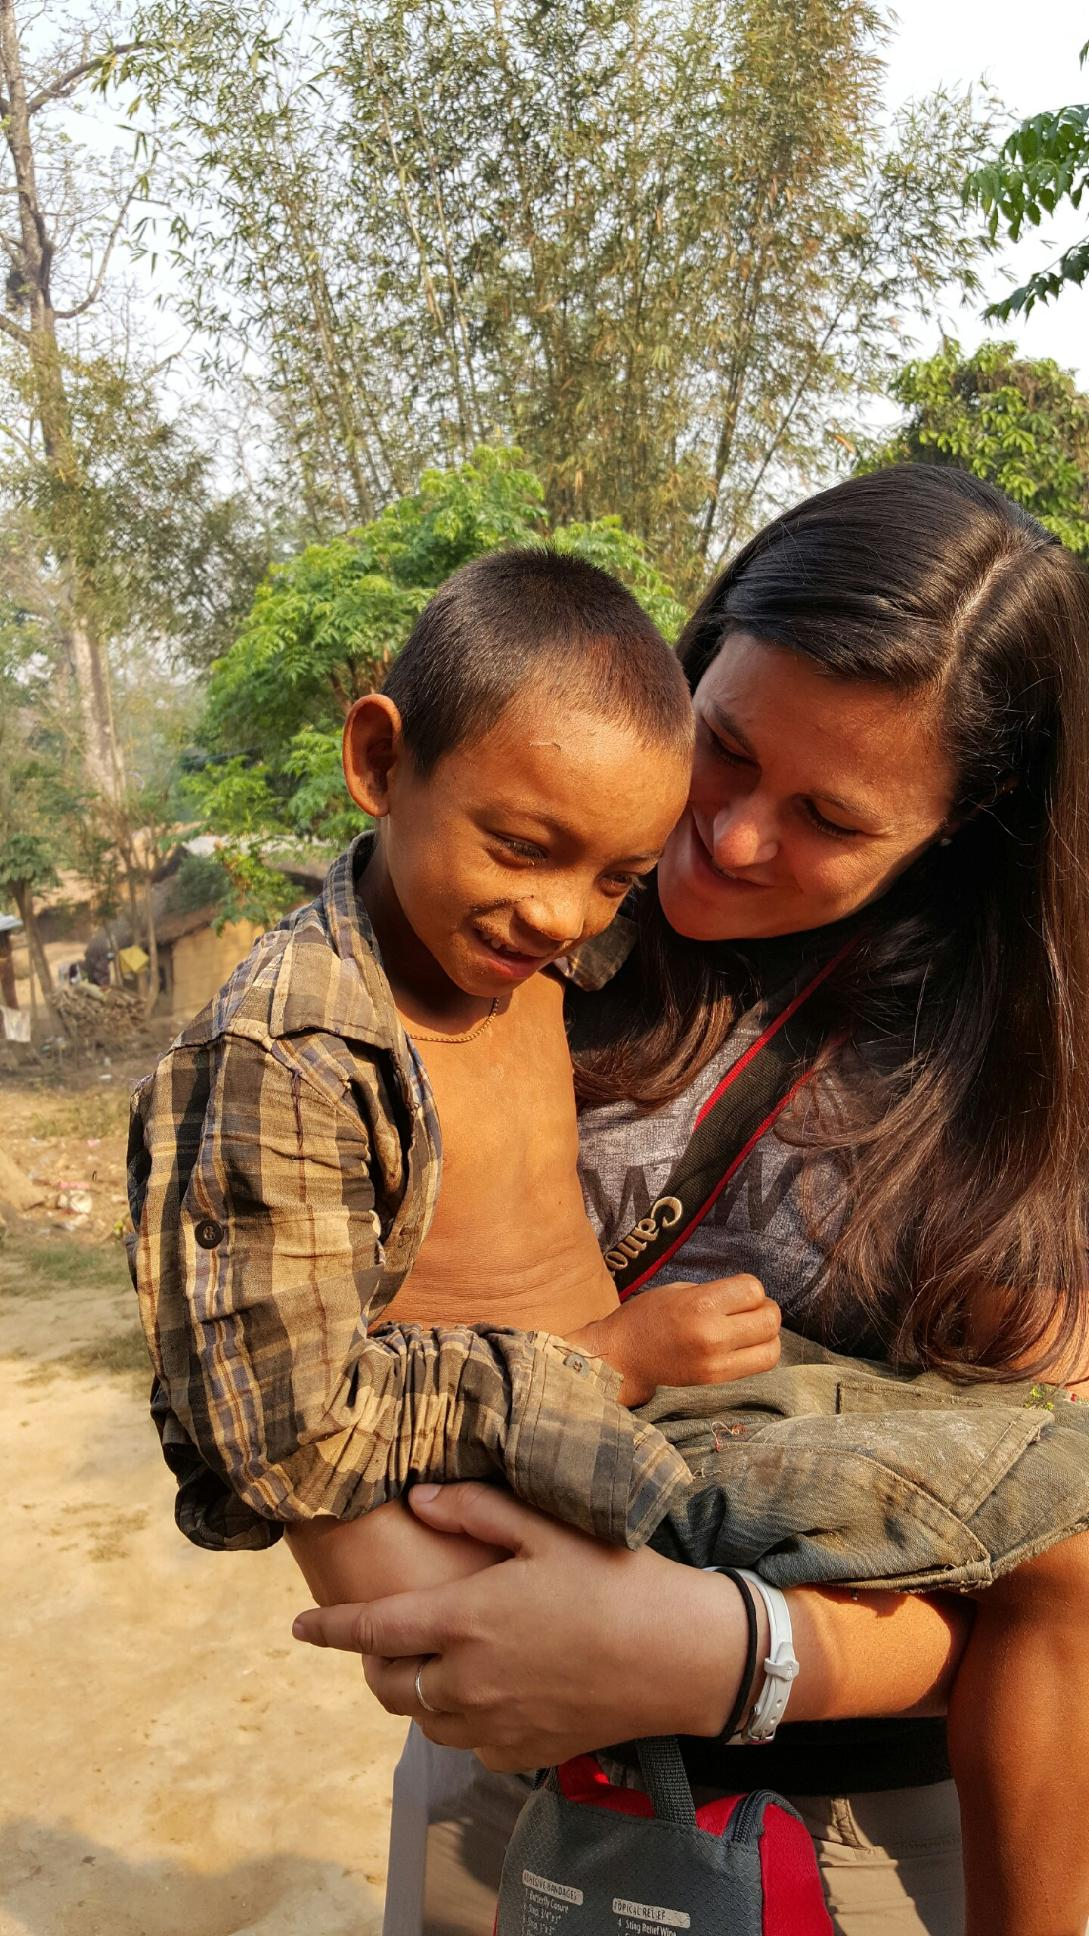 Santosh, a young Nepalese boy who lives in the village of Padampur.